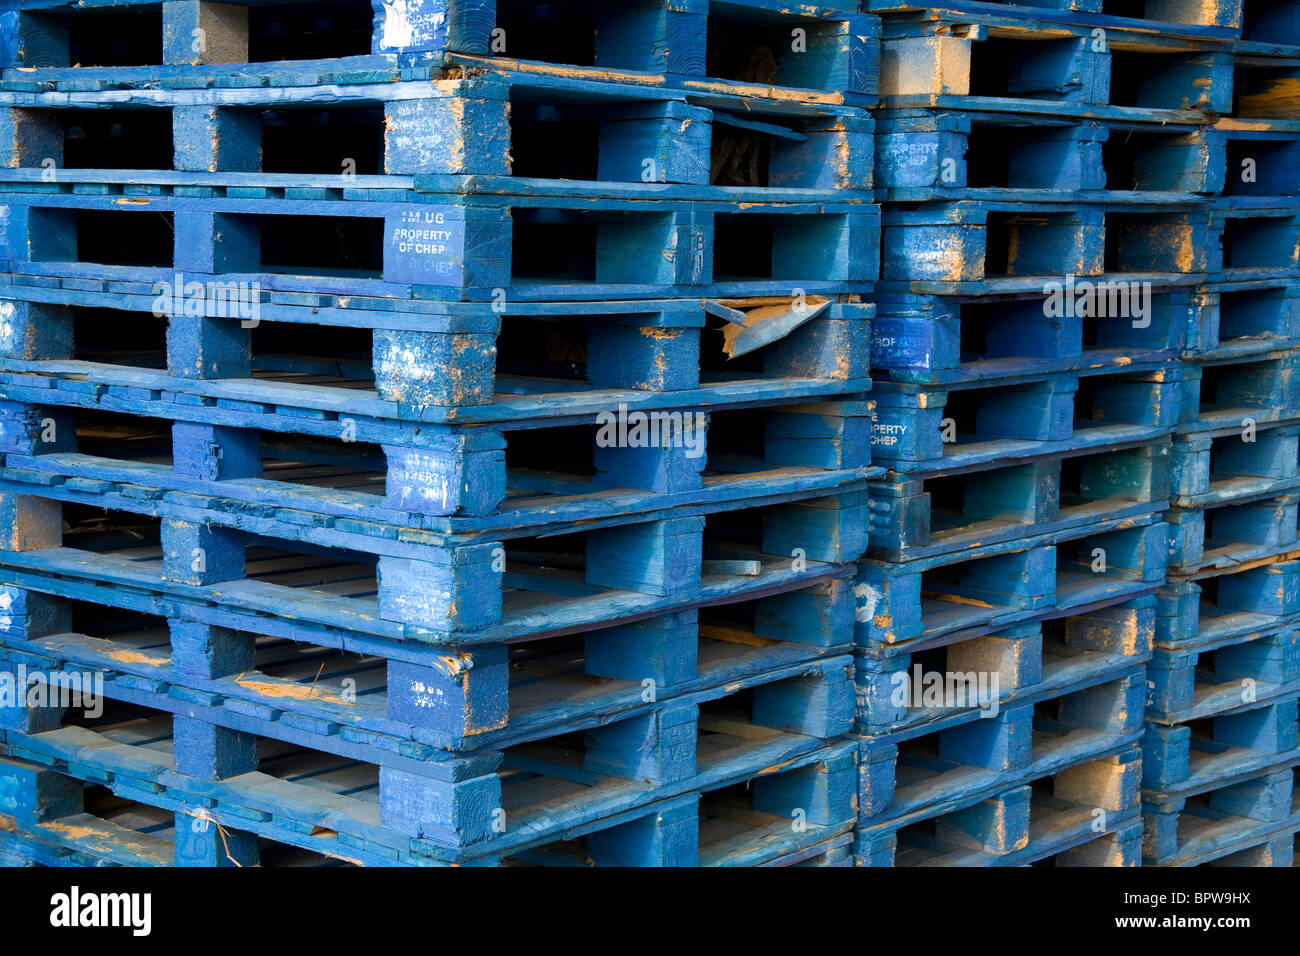 Chep Pallets Stock Photos & Chep Pallets Stock Images - Alamy